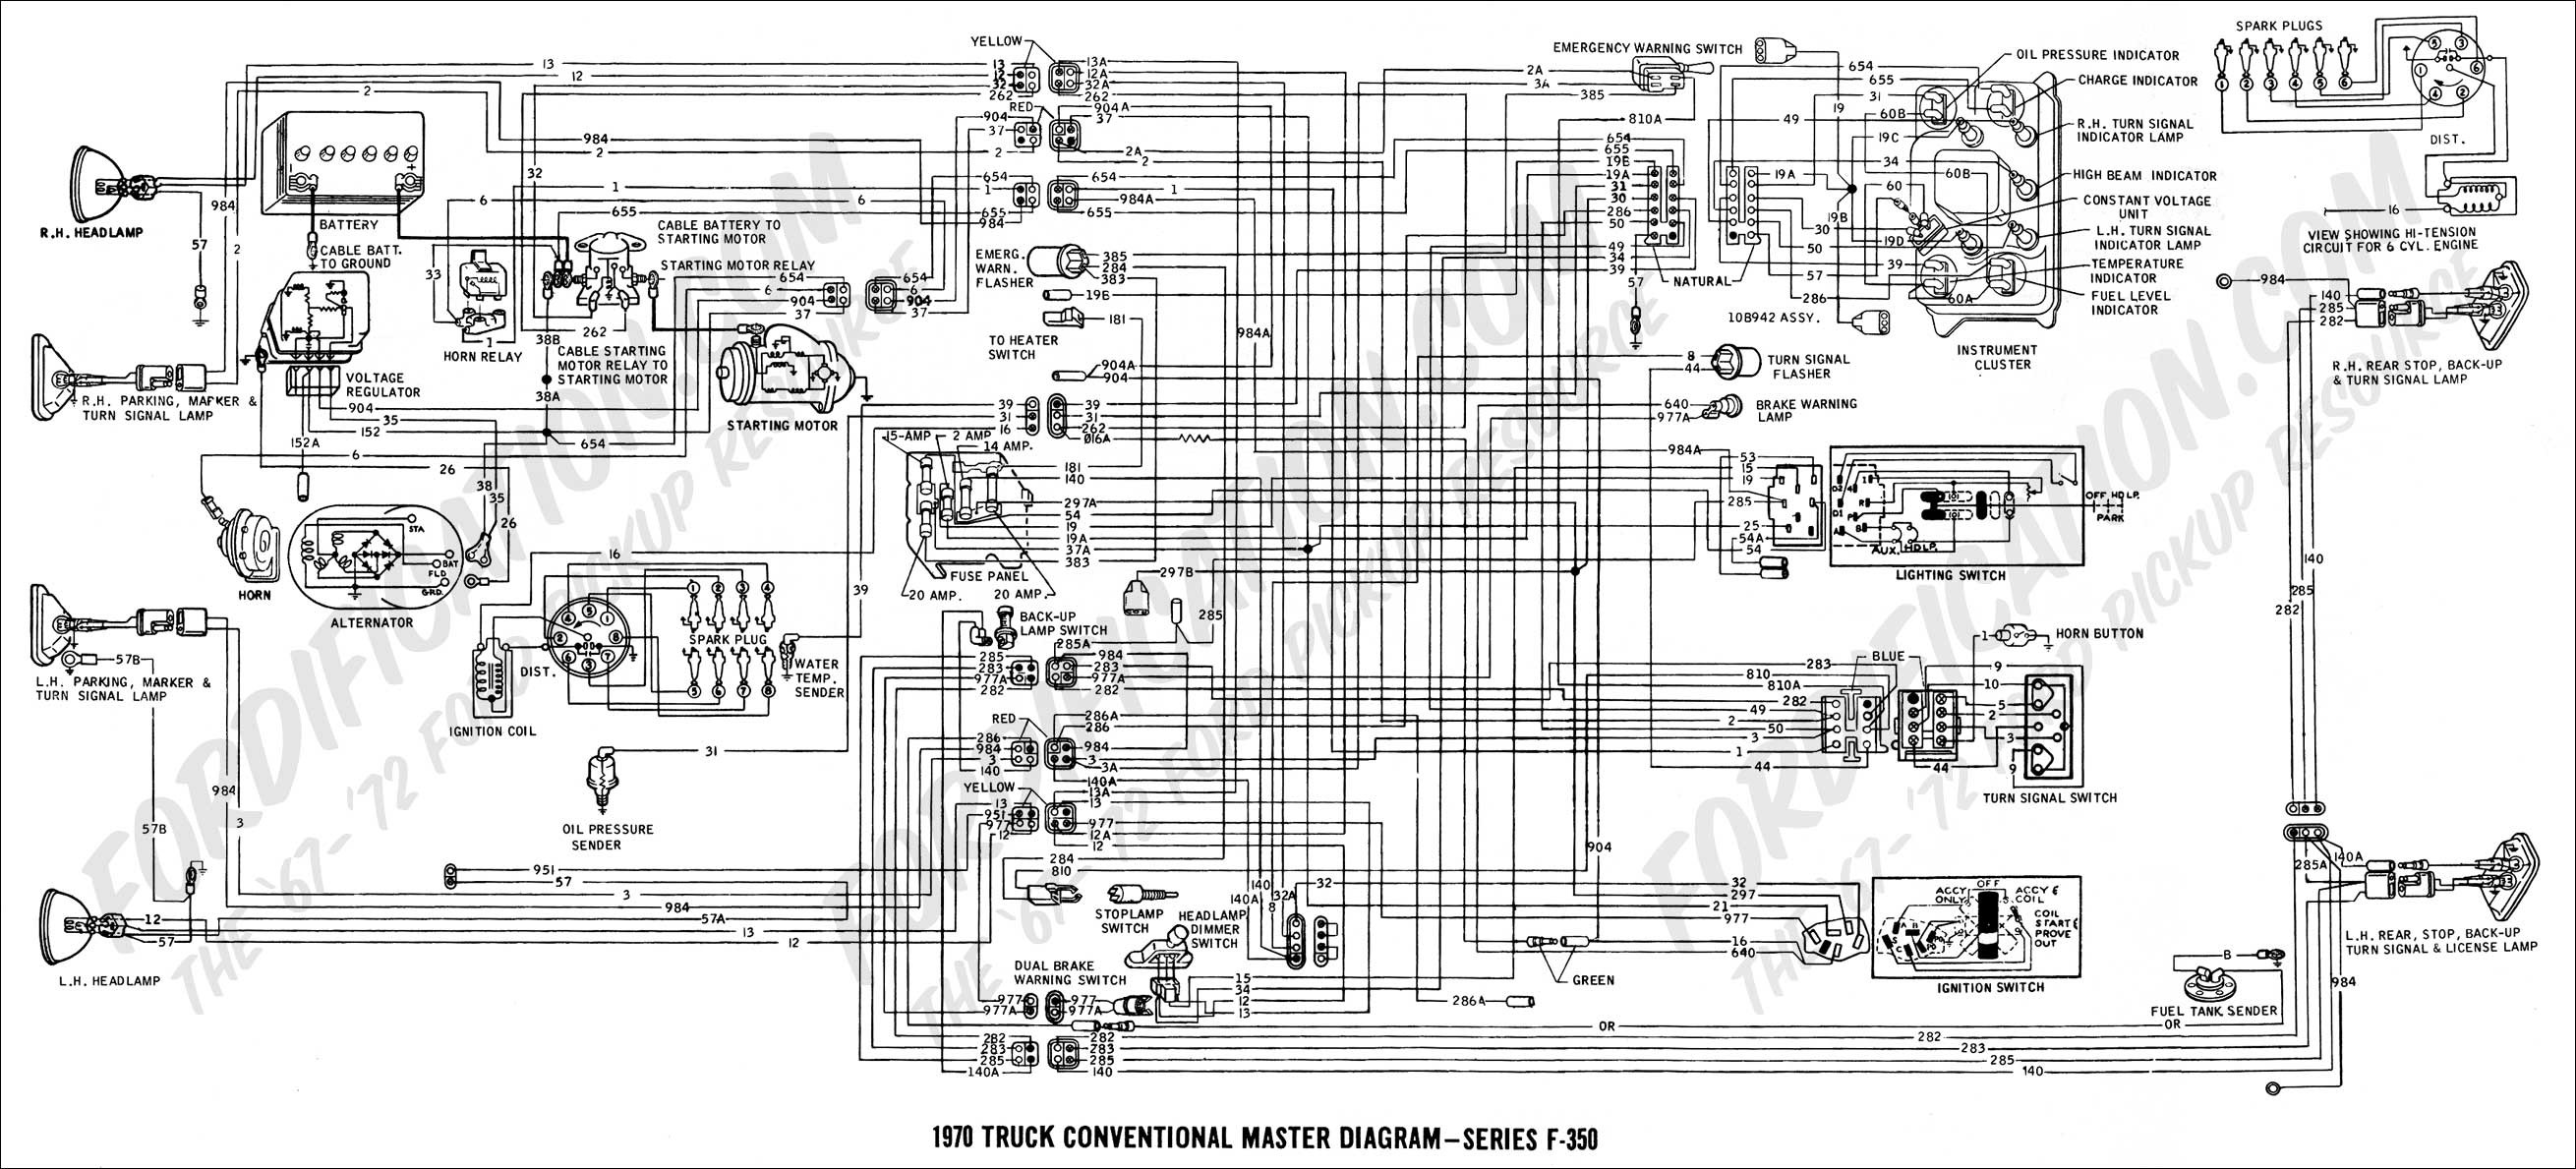 Tail Light Wiring Diagram for 2000 F350 2001 ford F350 Wiring Diagram Wiring Diagram Schematic Of Tail Light Wiring Diagram for 2000 F350